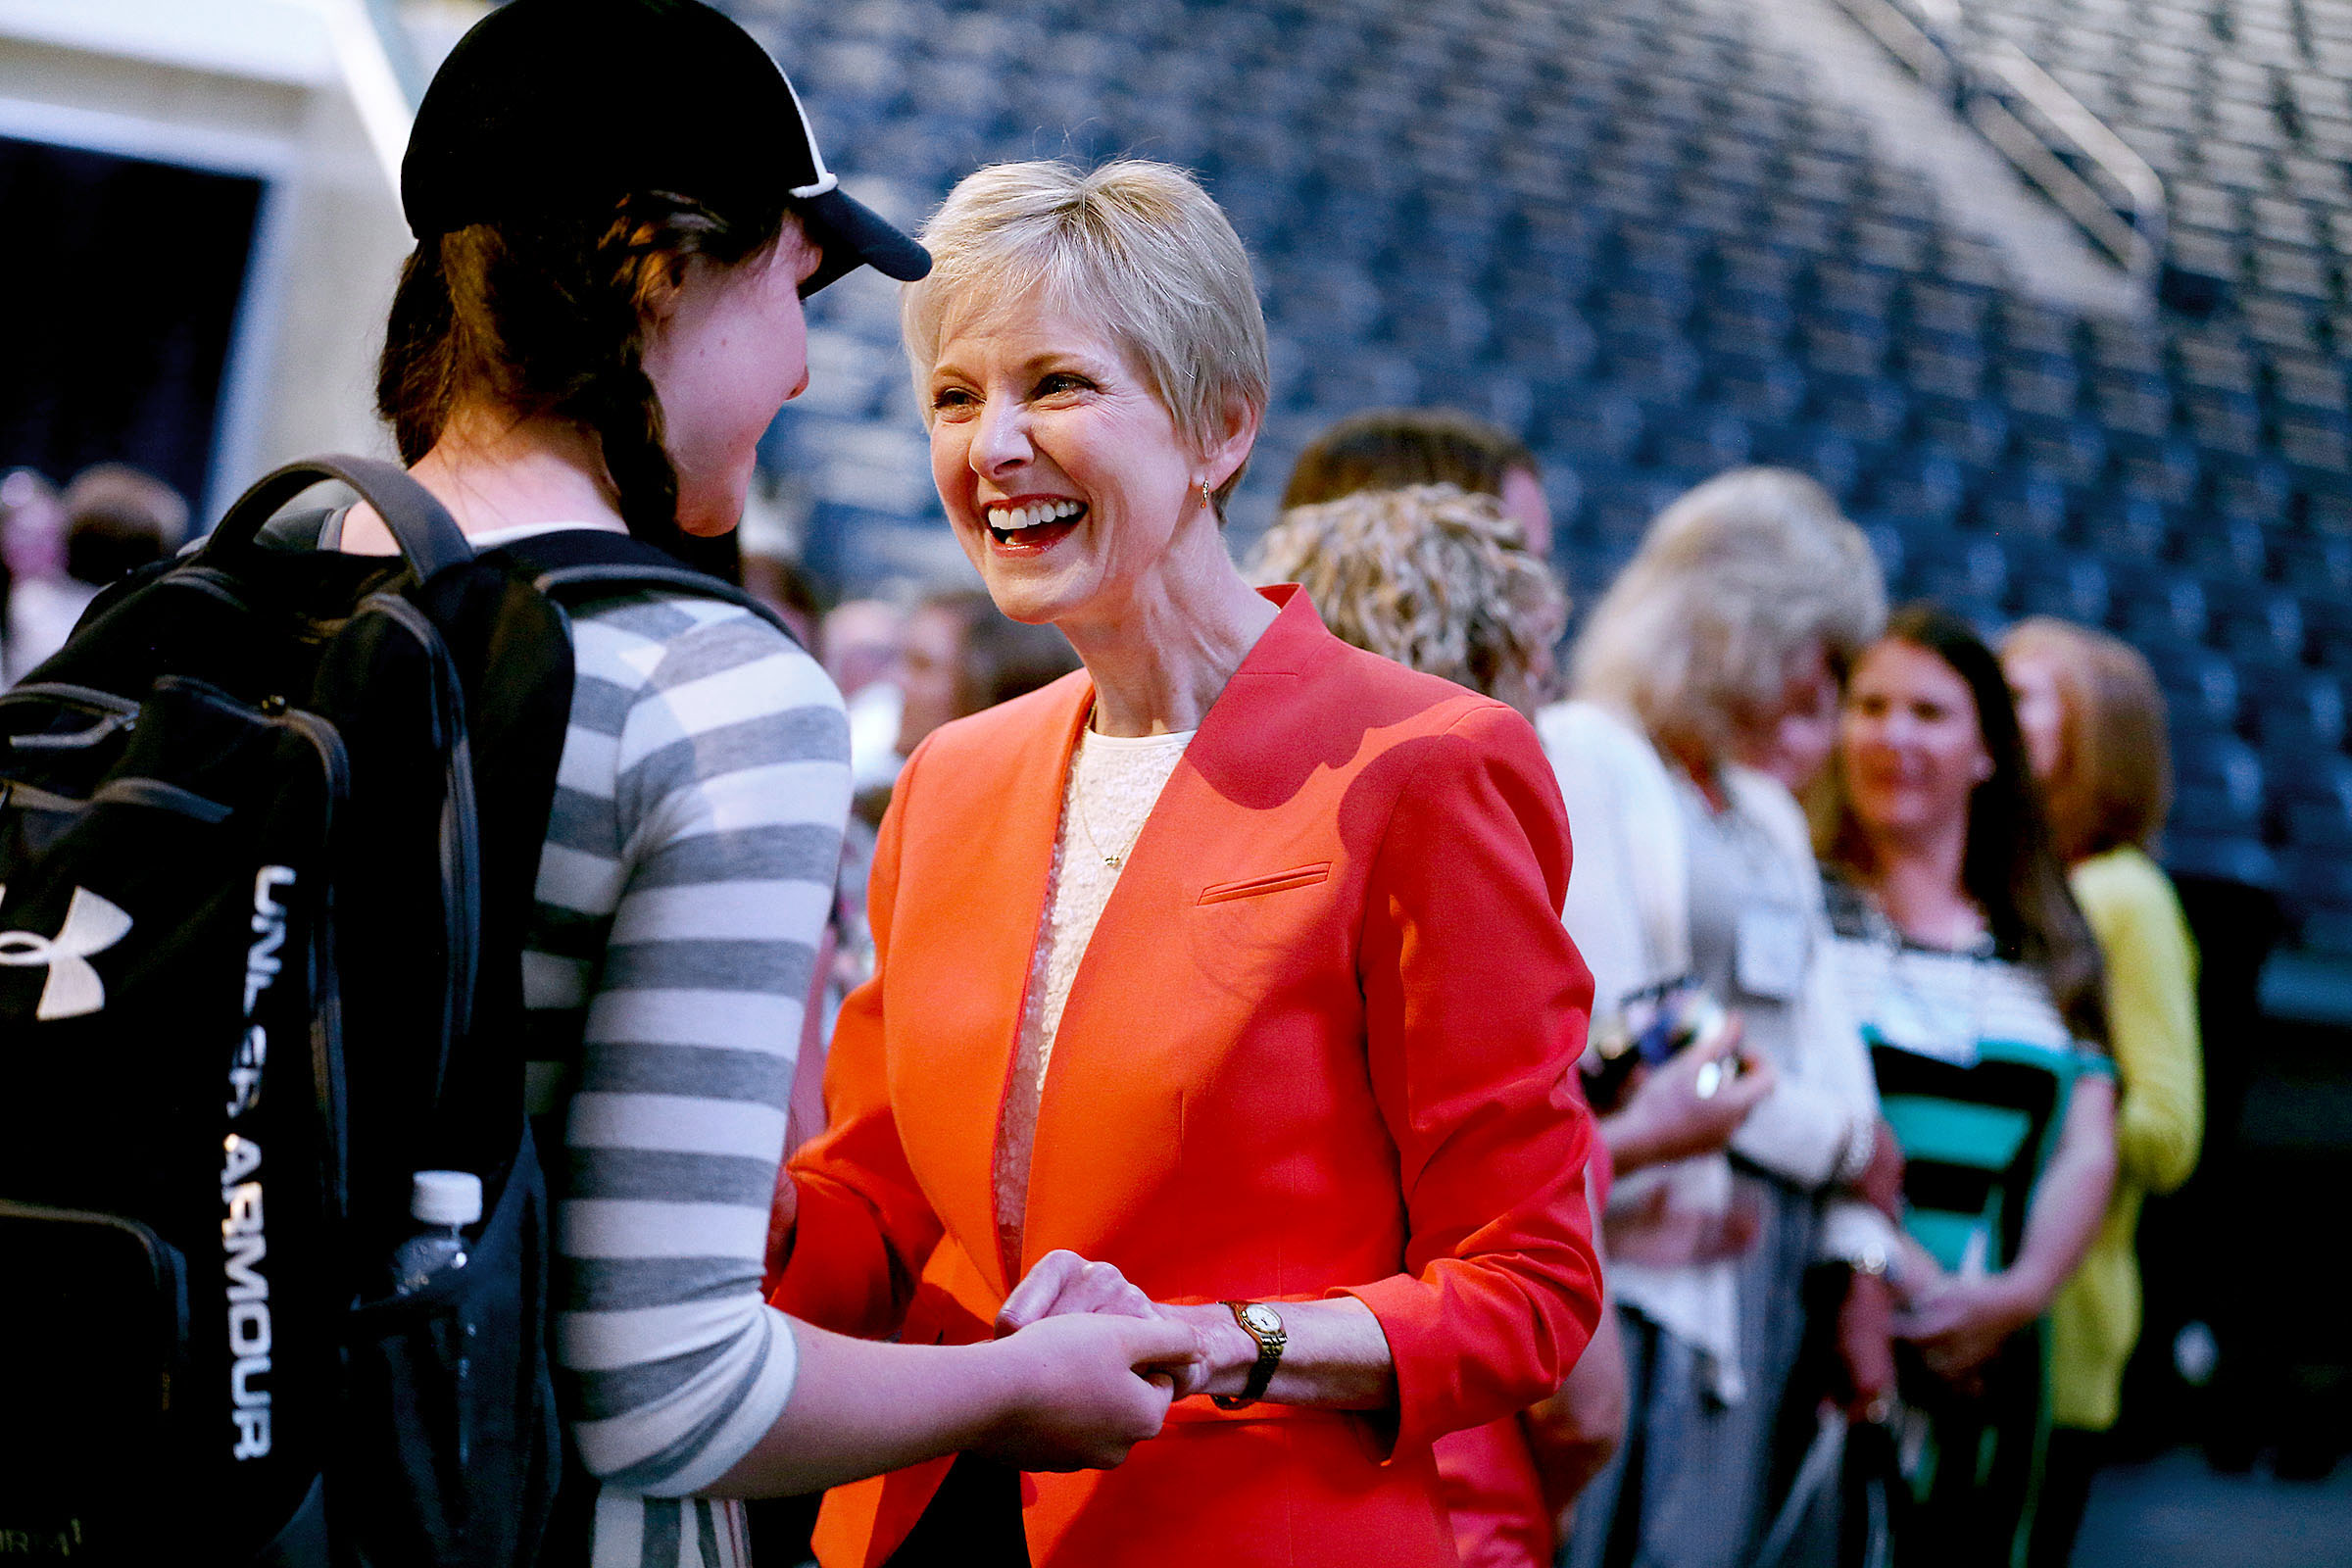 Jean B. Bingham, Relief Society General President, speaks with attendees of the BYU Women's Conference in the Marriott Center at BYU in Provo on Friday, May 5, 2017.